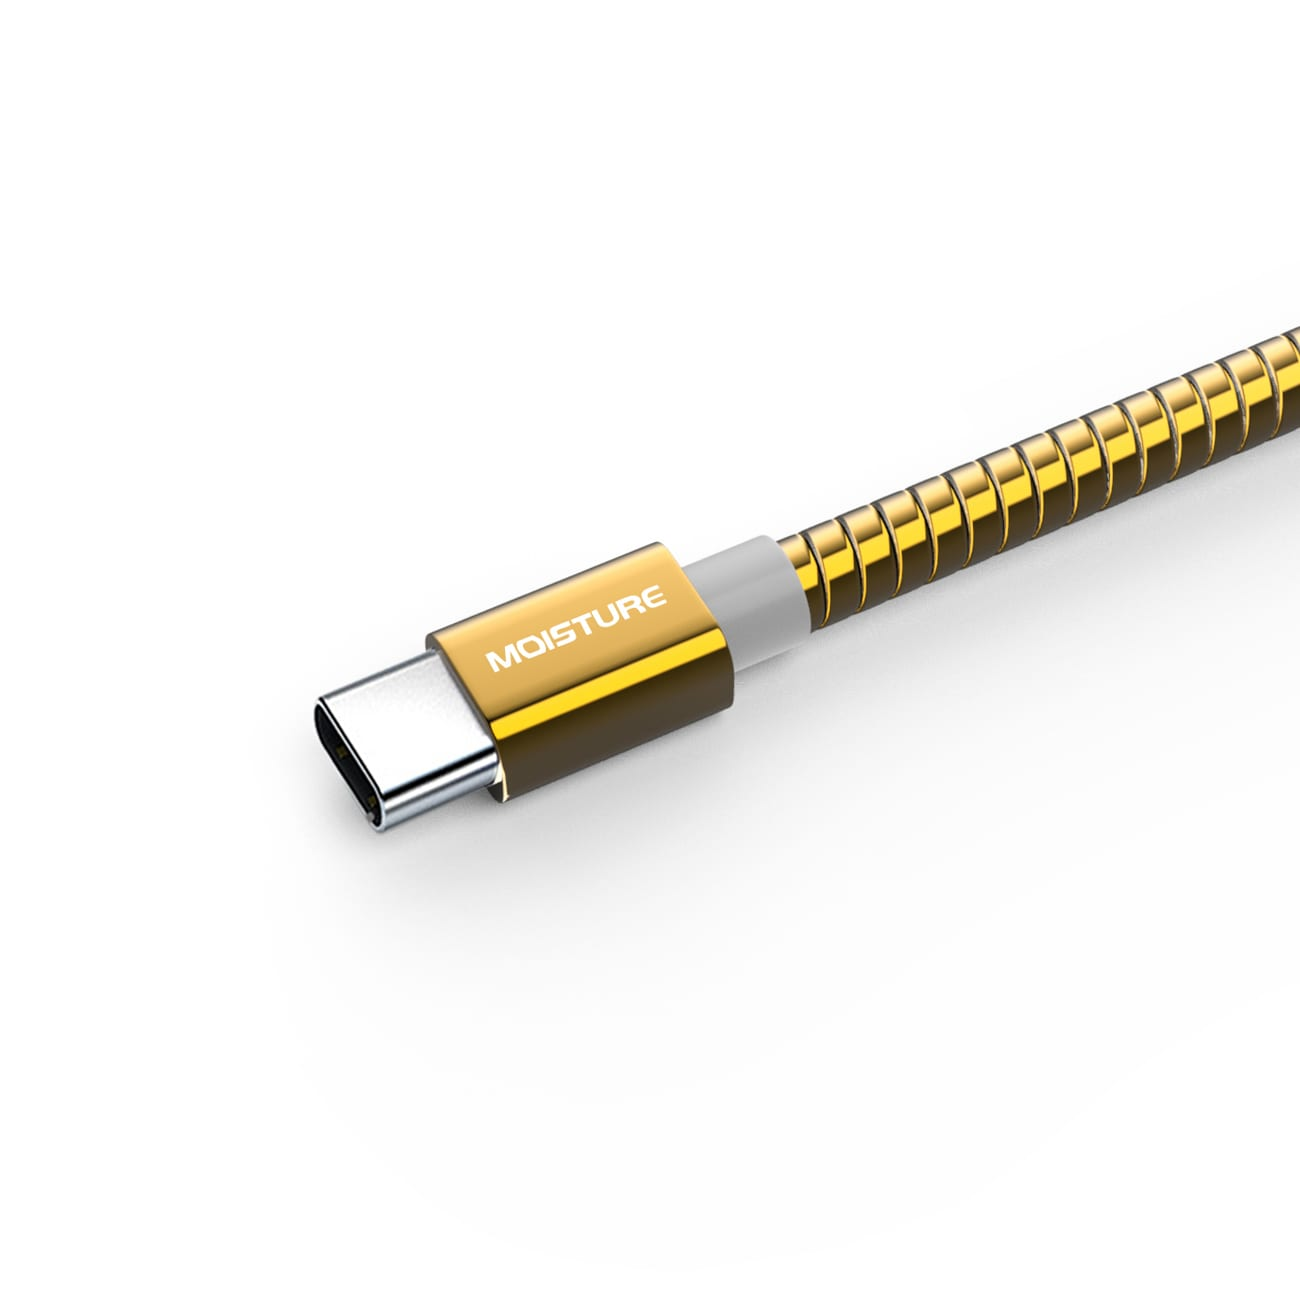 High Speed Type-C Data Cable in Gold